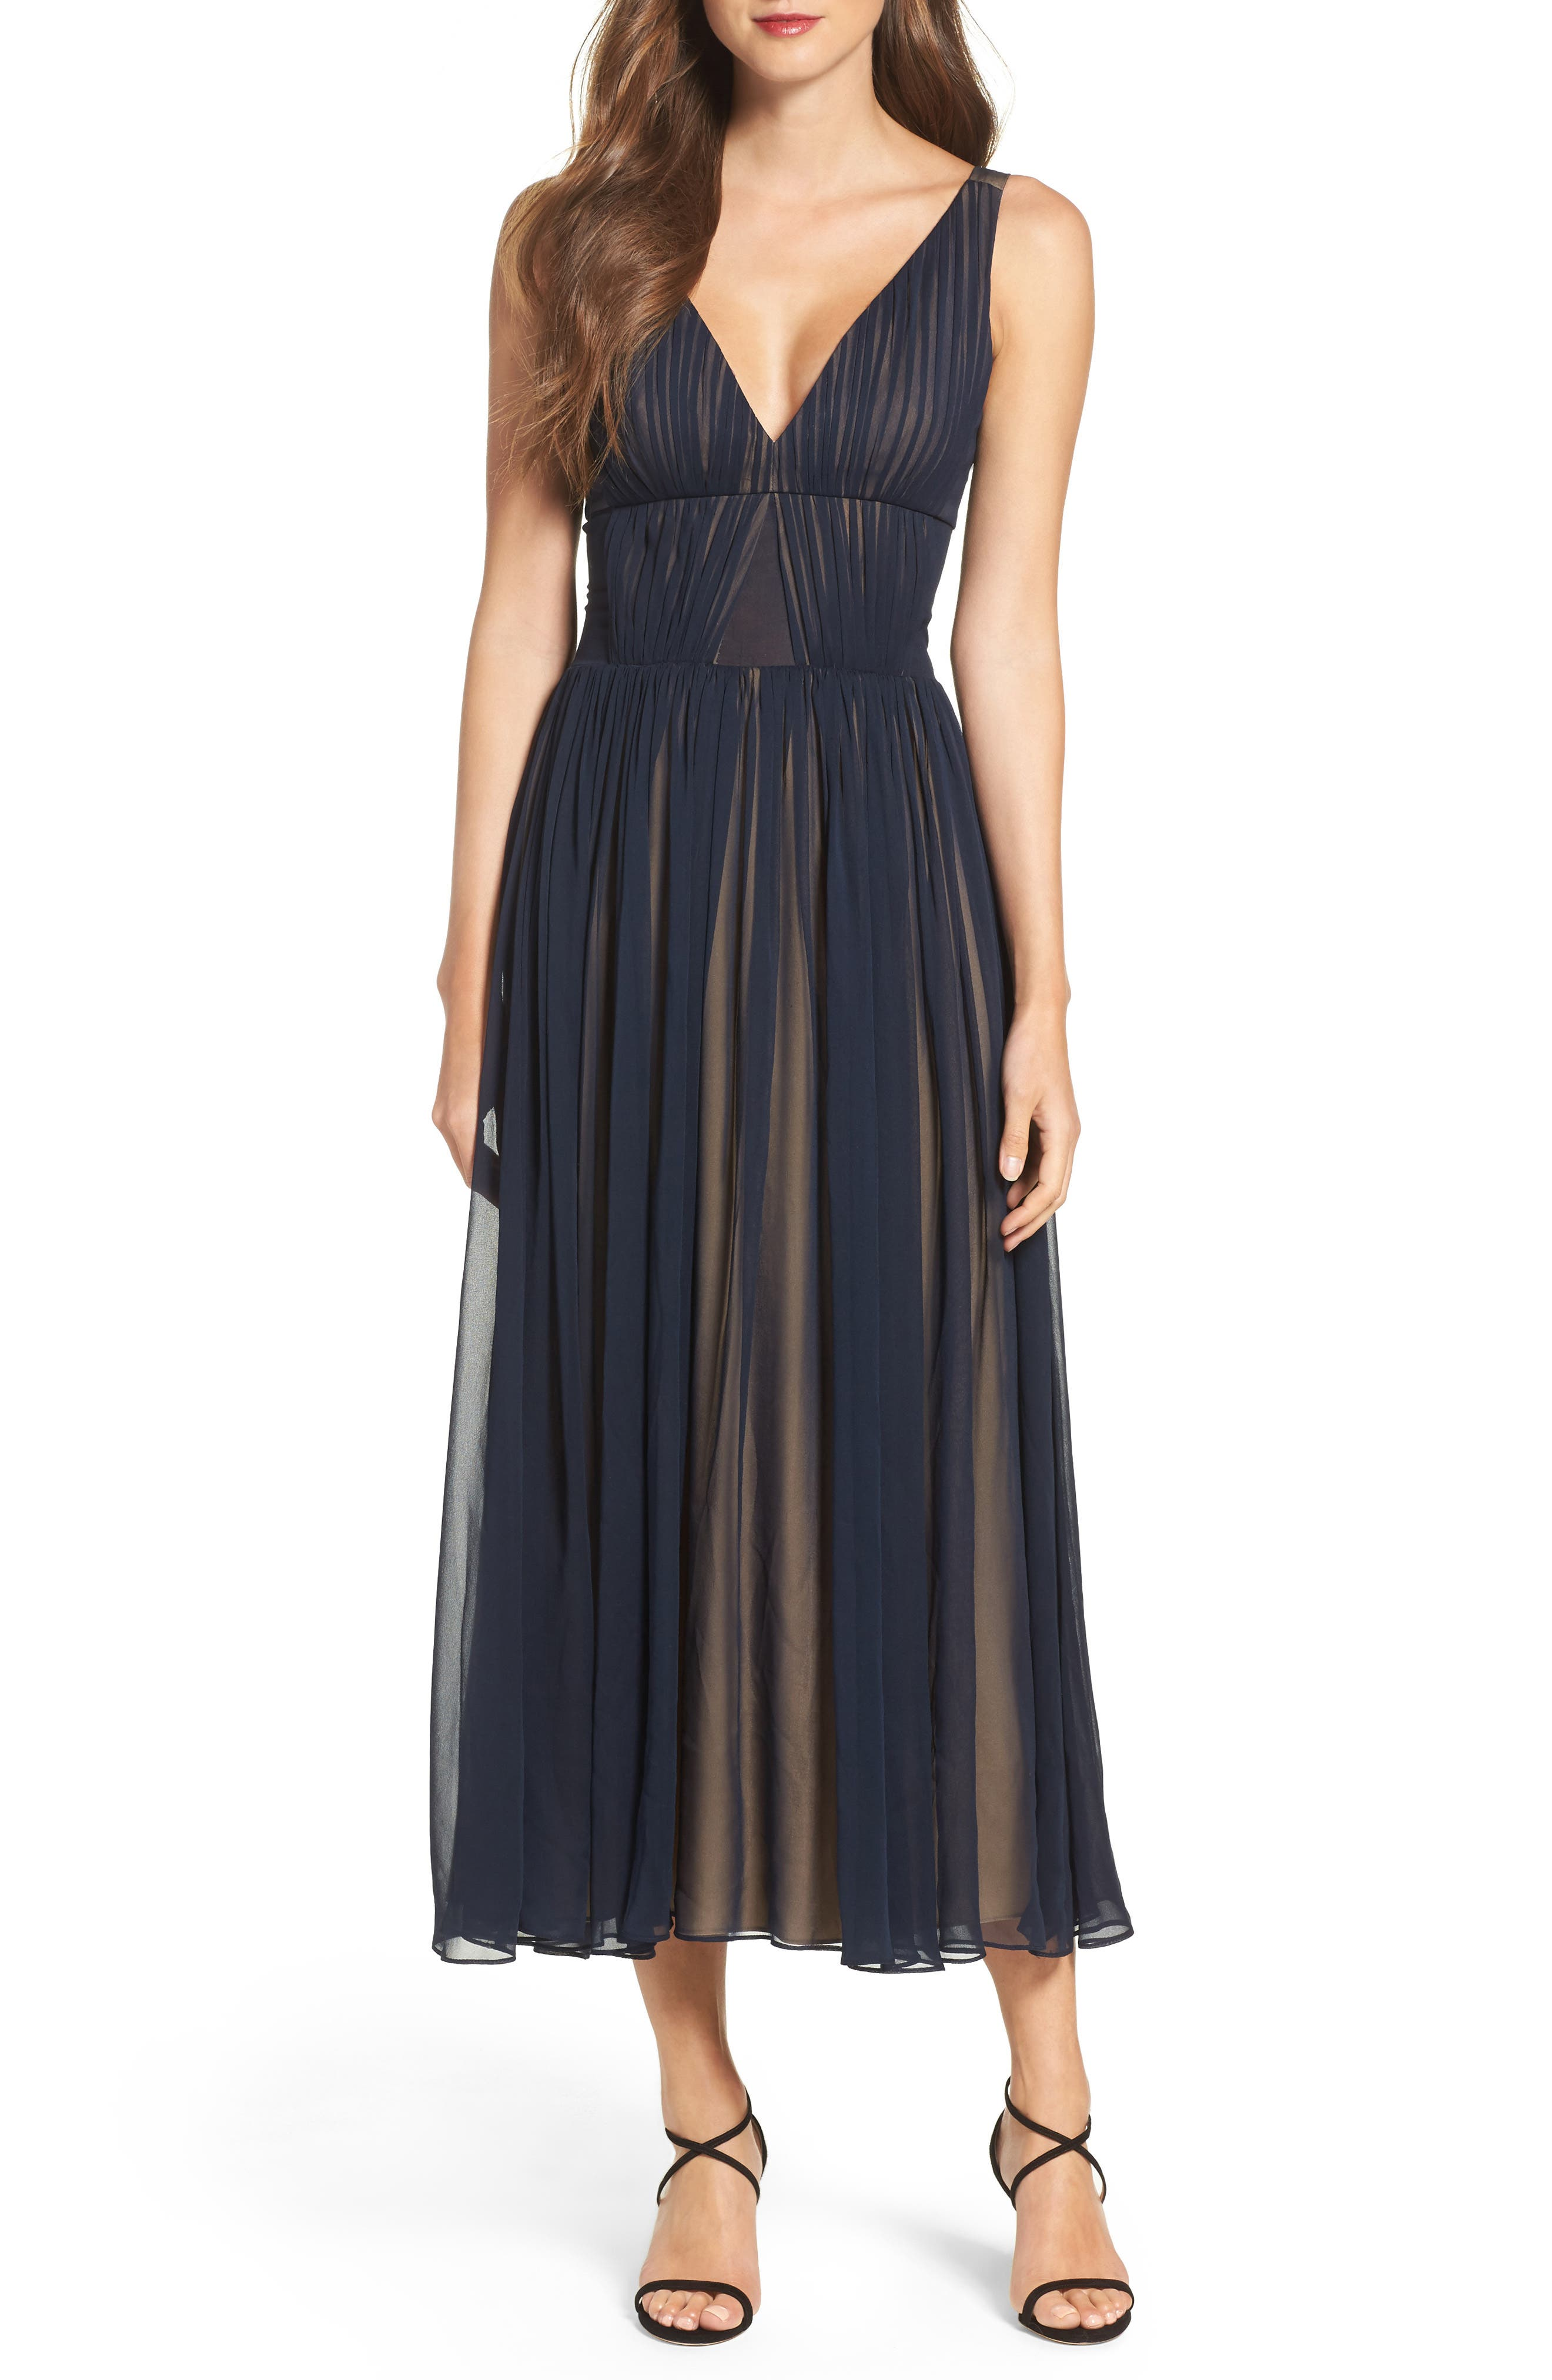 Vera Wang Chiffon Fit & Flare Dress